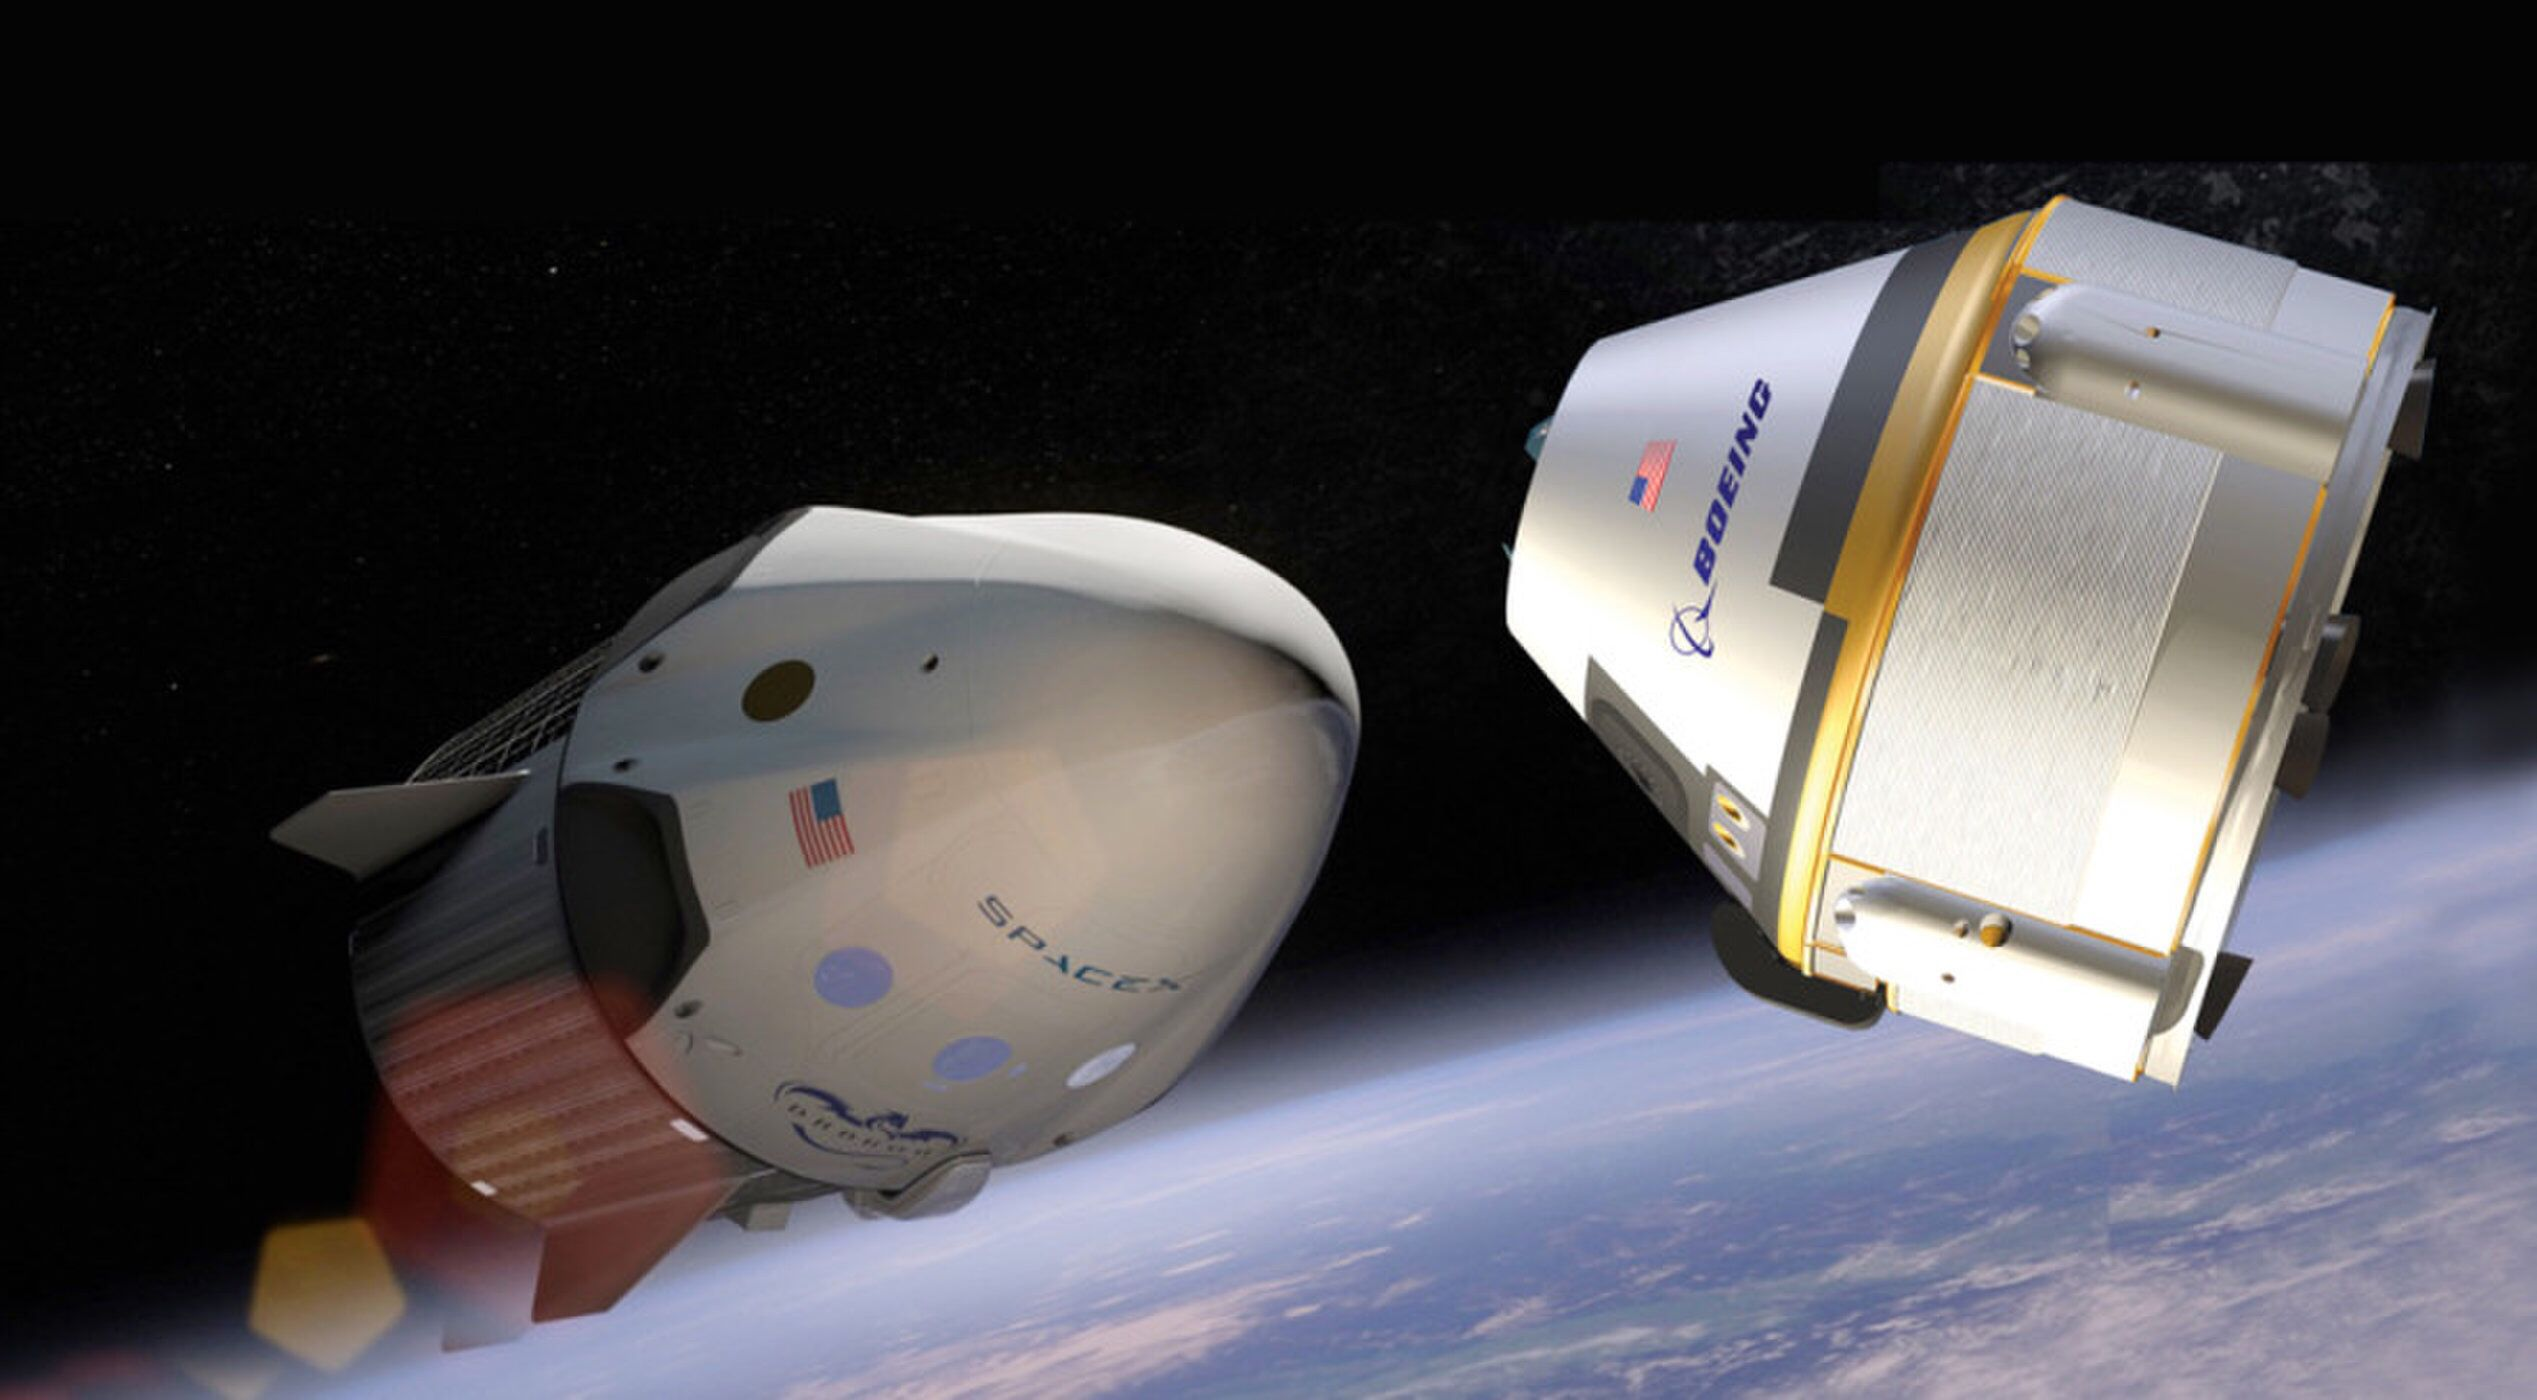 news nasa engineers dream big with small spacecraft - HD 1713×943